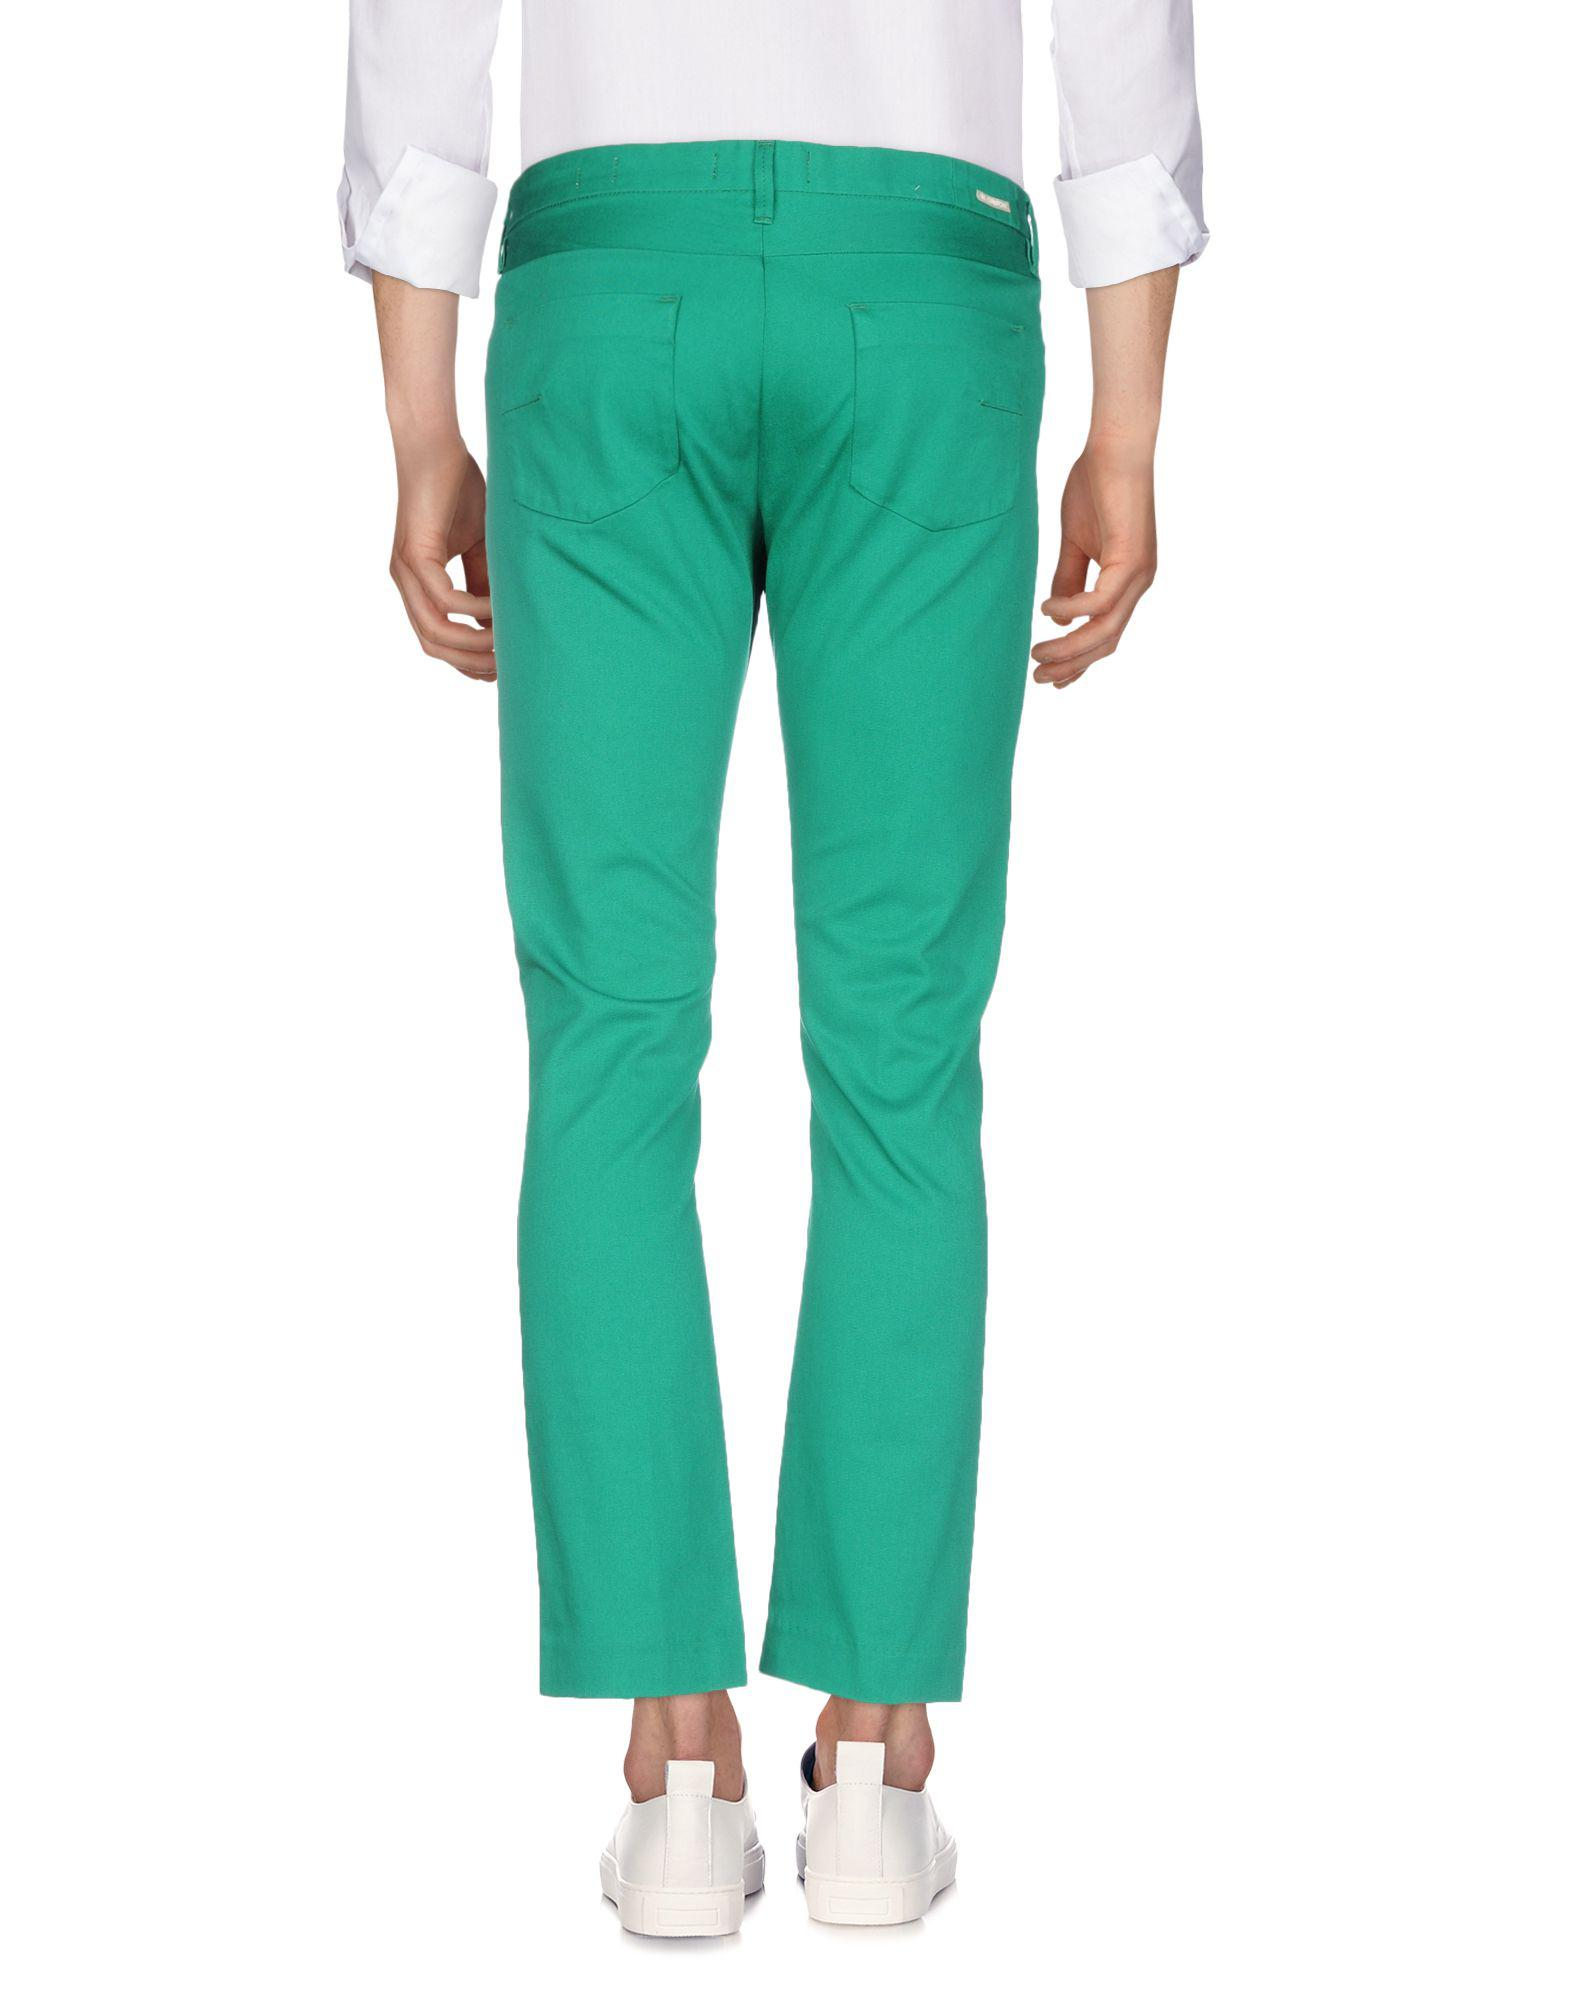 Mauro Grifoni Denim Pants in Green for Men